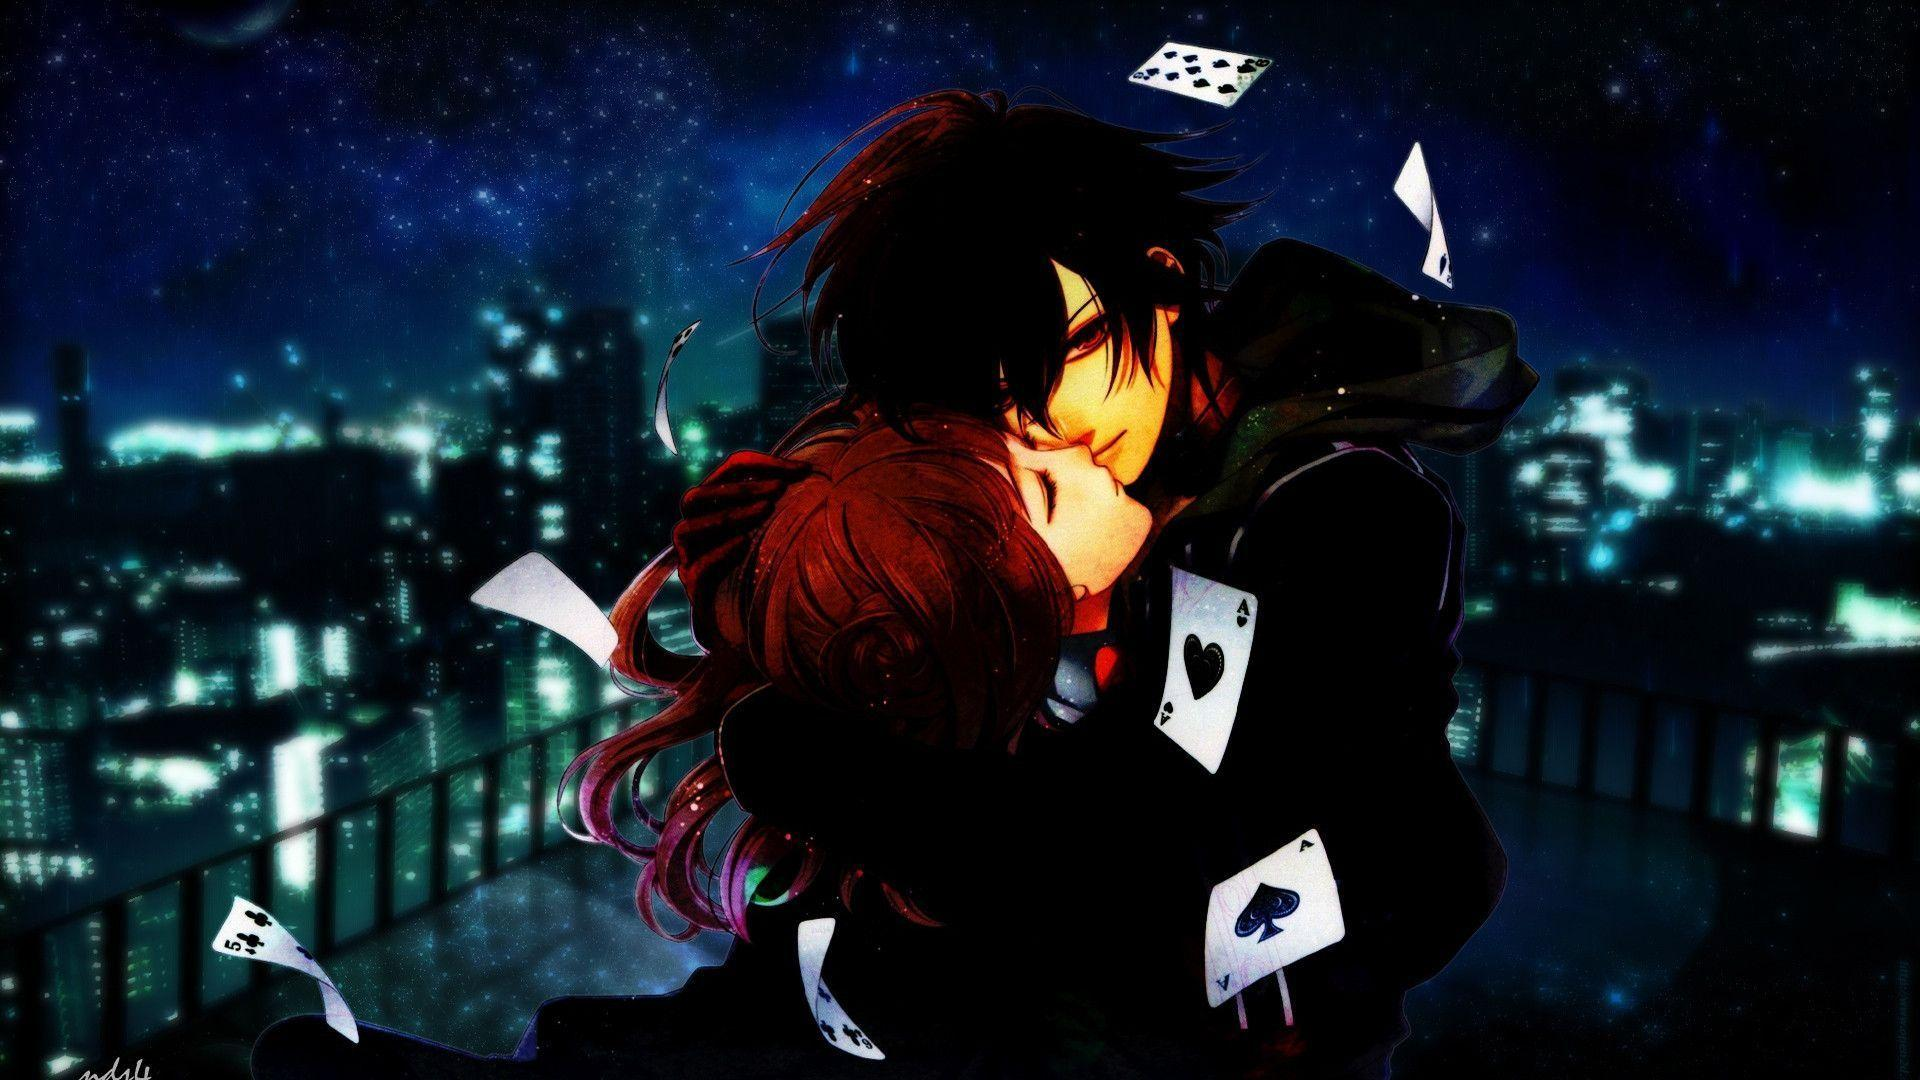 Love couple Animated Wallpaper Hd : Anime Love Wallpapers - Wallpaper cave